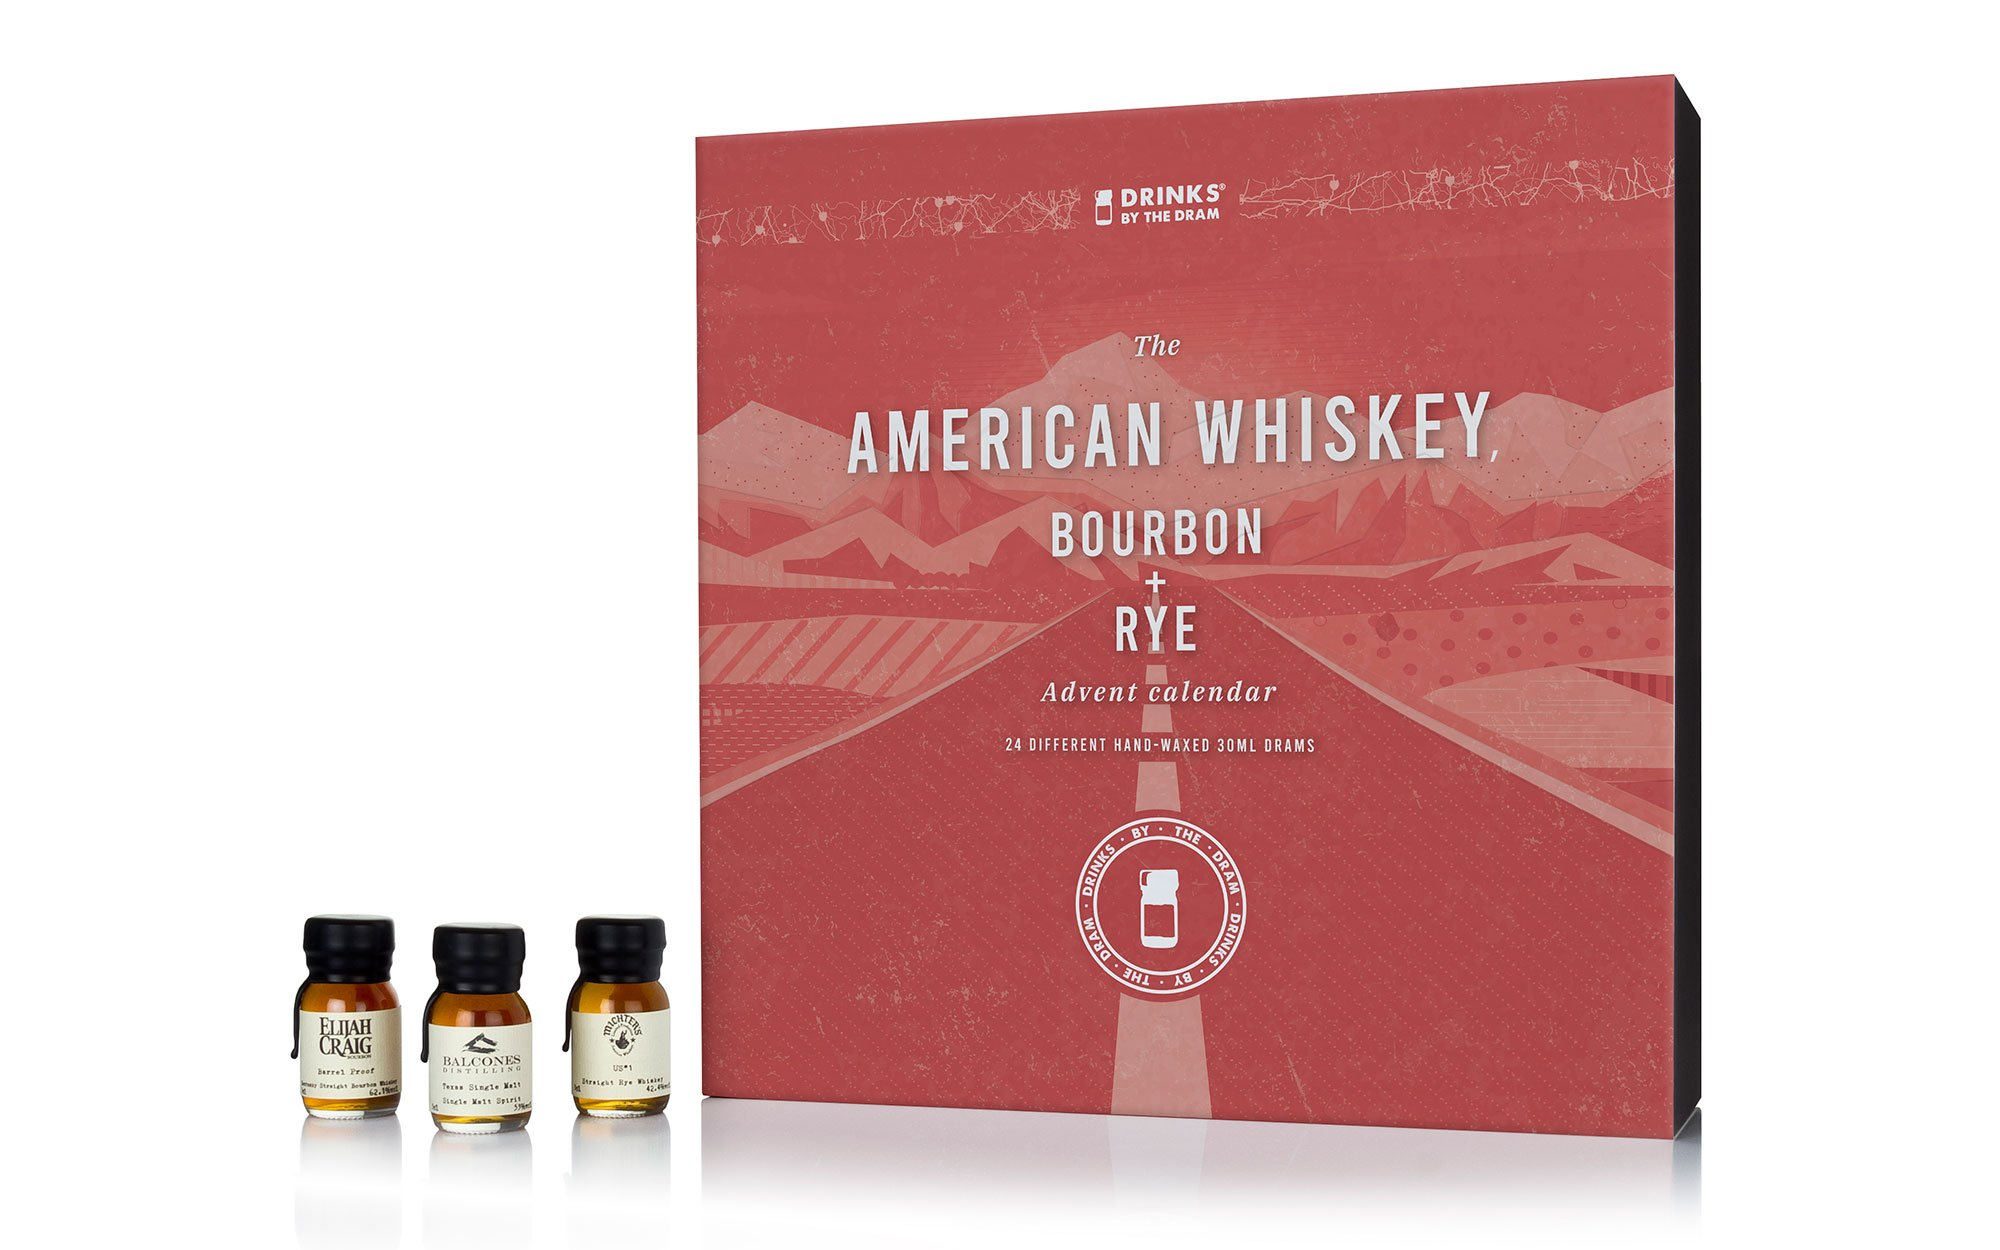 The American Whiskey, Bourbon & Rye Advent Calendar